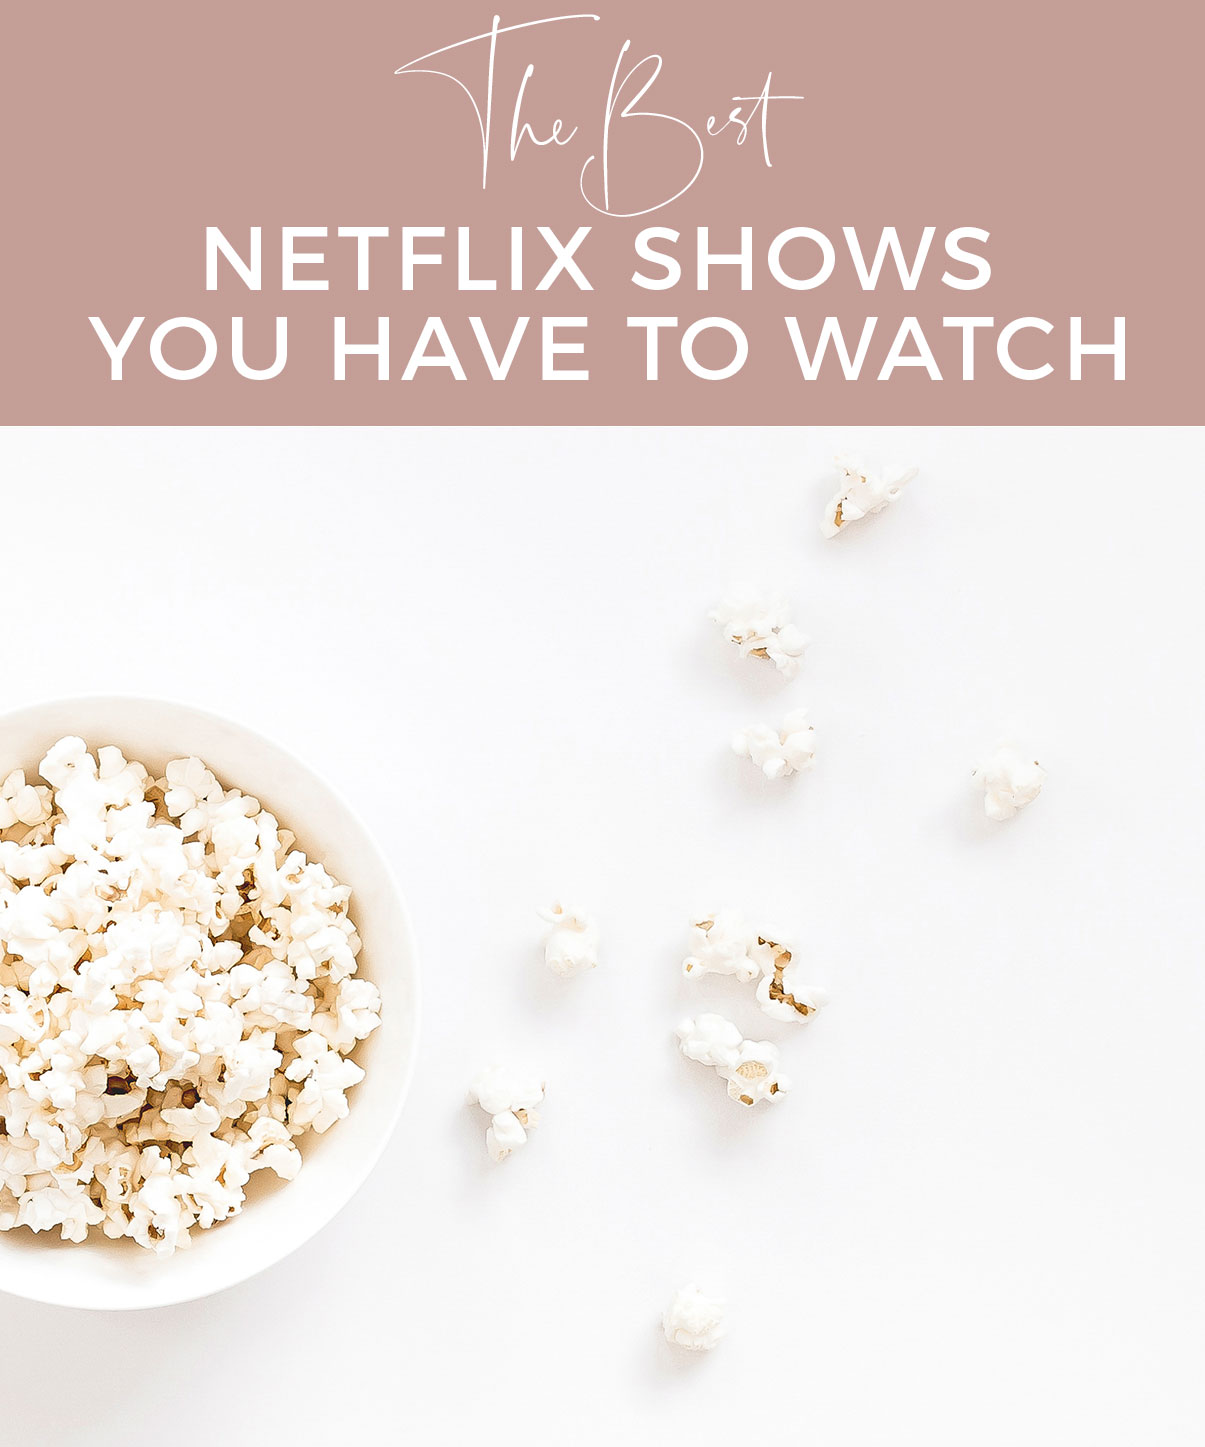 reviews-the-best-netflix-shows-you-have-to-watch-schitts-creek-the-oa-stranger-things-jane-the-virgin-riverdale-the-vampire-diaries-pretty-little-liars-the-good-place-queer-eye